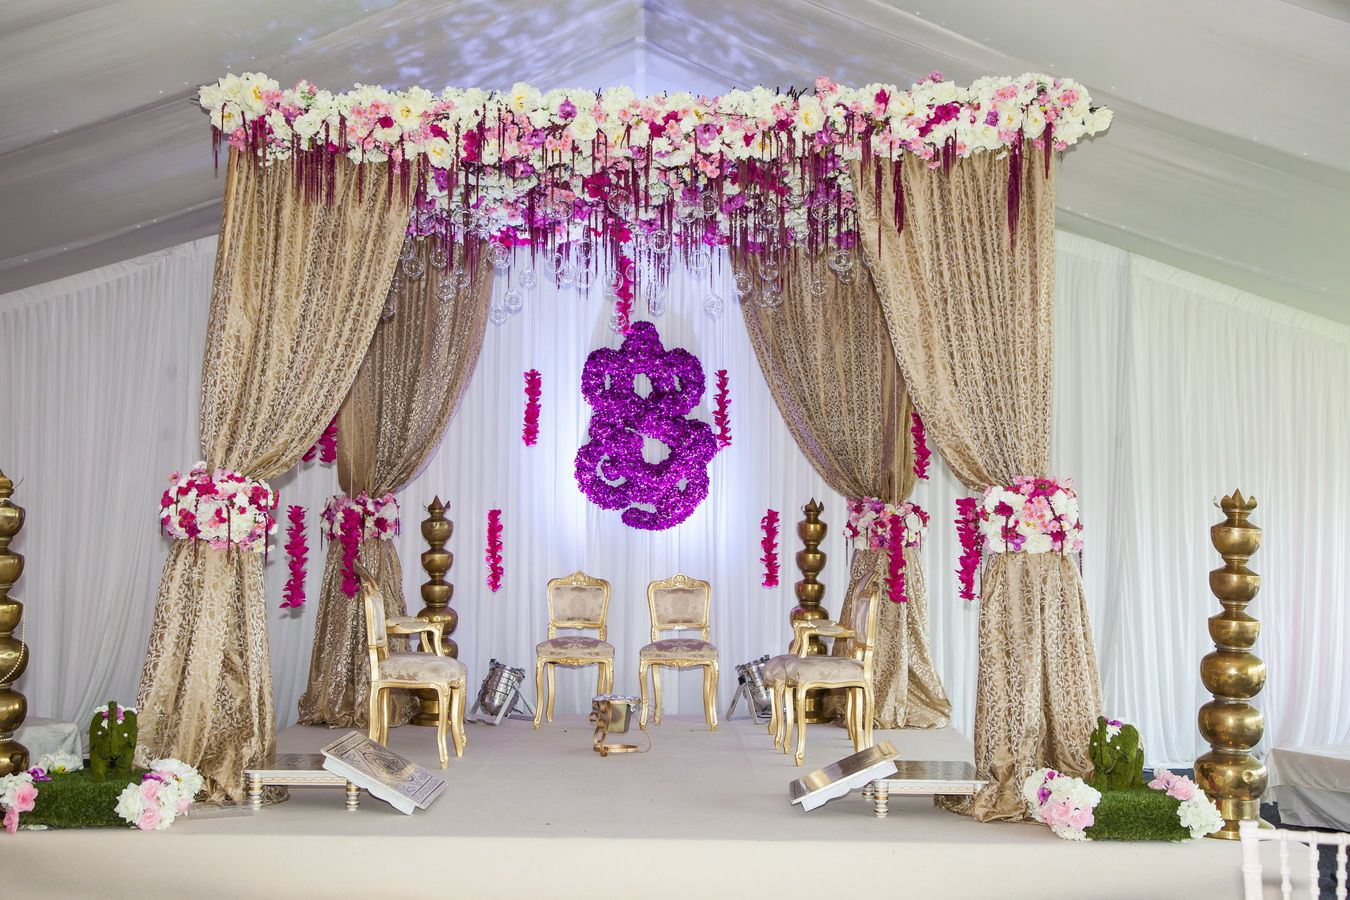 Mandap inspiration for indian wedding decorations in the bay area for indian wedding decorations in the bay area california contact rr event rentals located in union city serving the bay area and beyond junglespirit Images